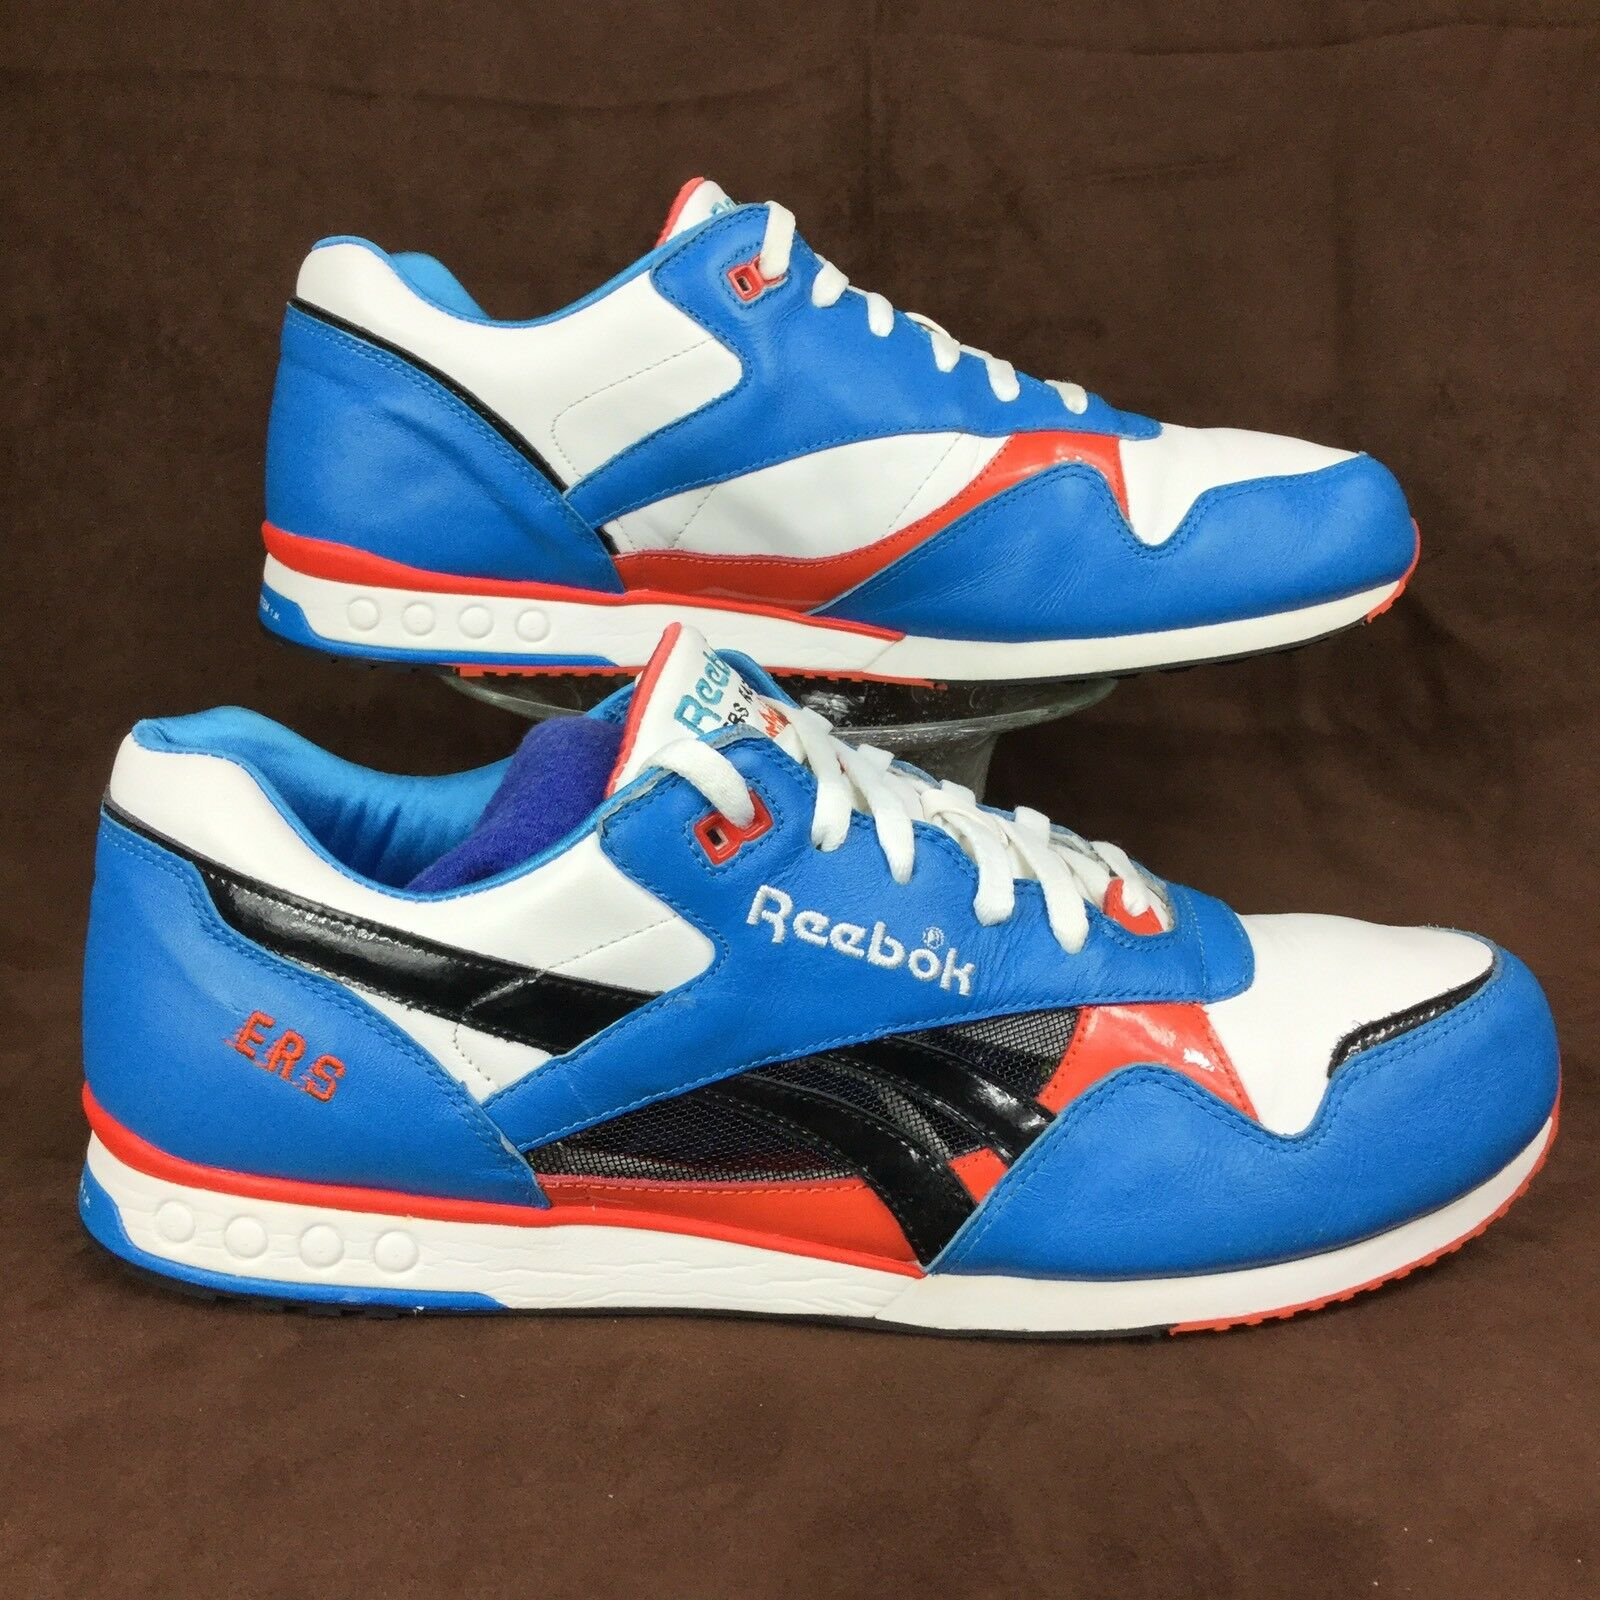 Rare REEBOK Classic ERS RACER running training shoe 5000 . EU47 men's 13